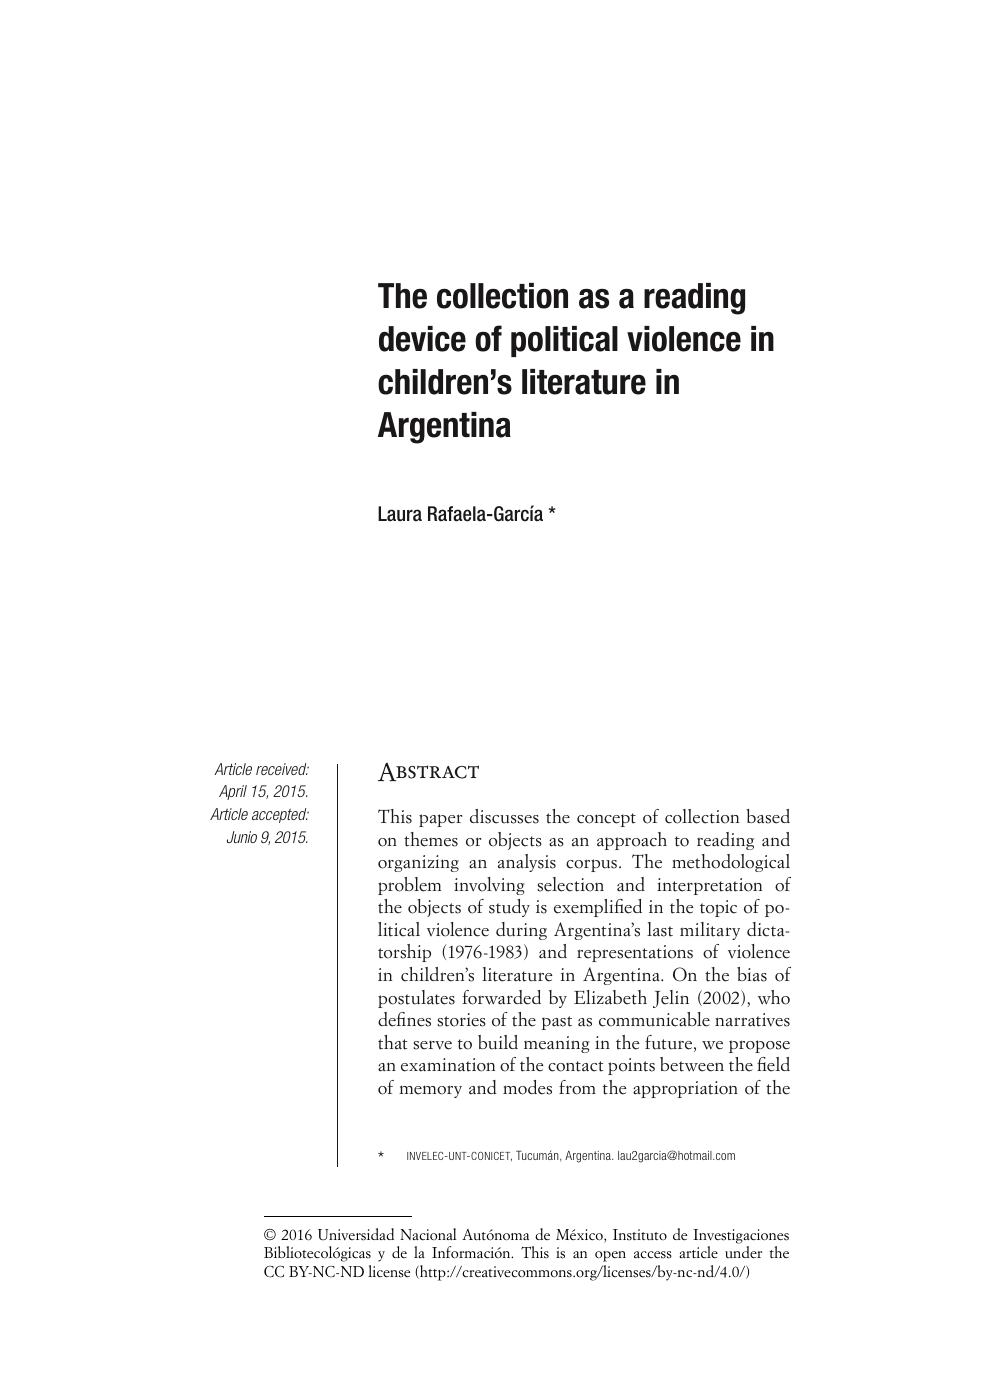 The collection as a reading device of political violence in